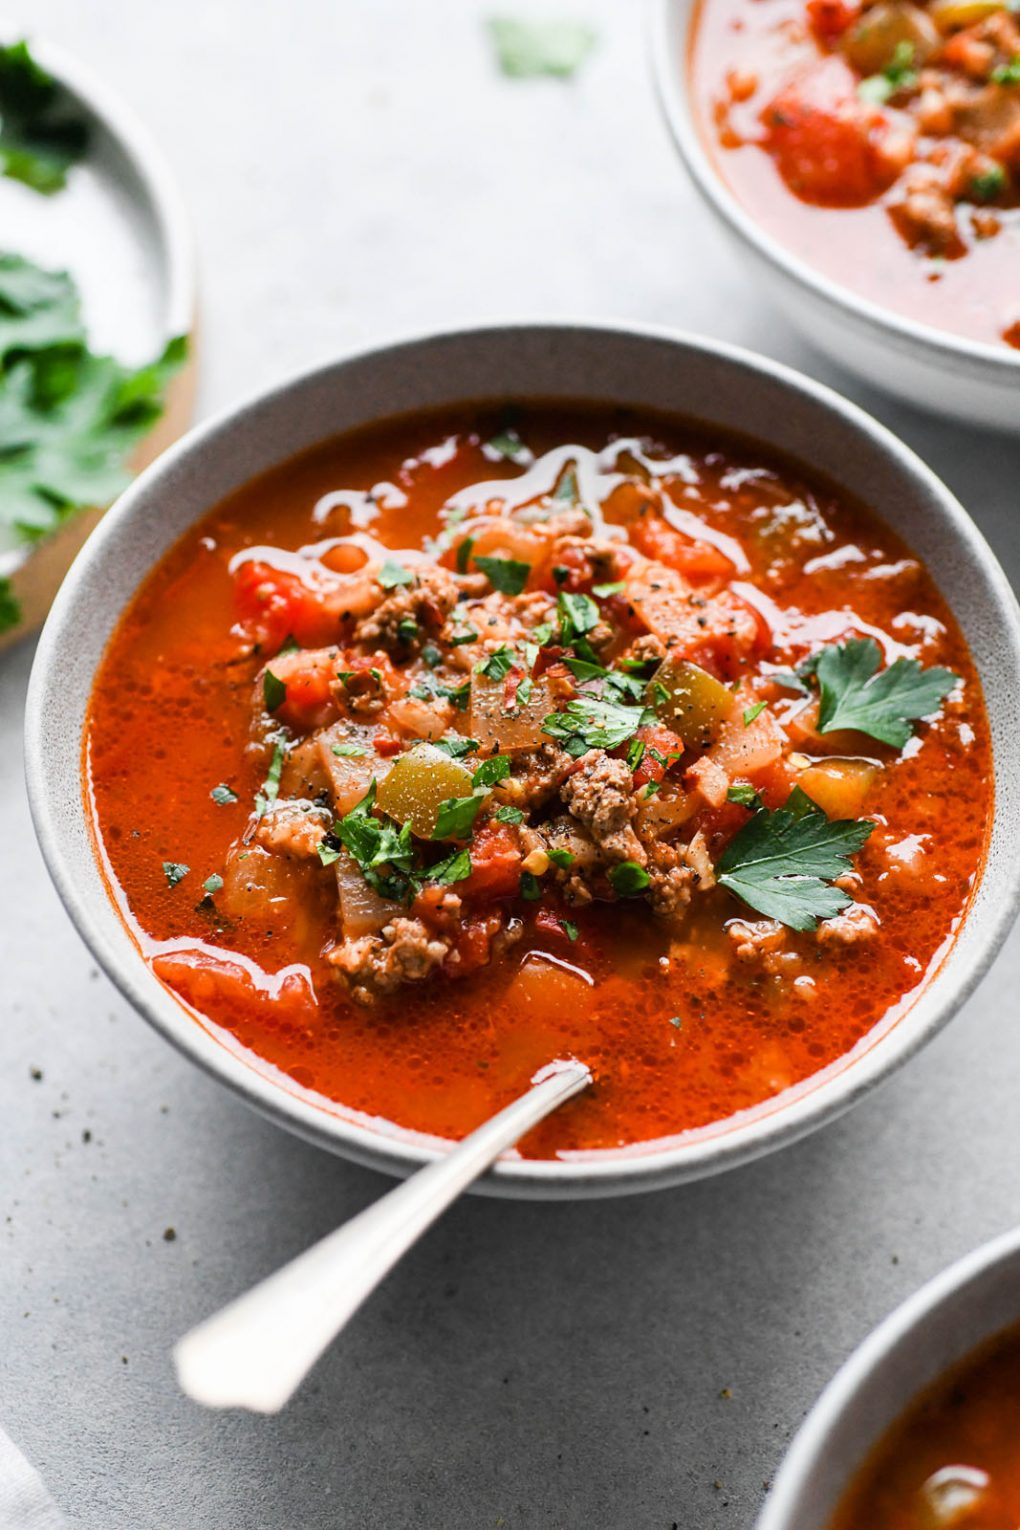 45 degree angle shot of a colorful bowl of stuffed bell pepper soup on a light colored background, topped with fresh parsley and some cracked black pepper.